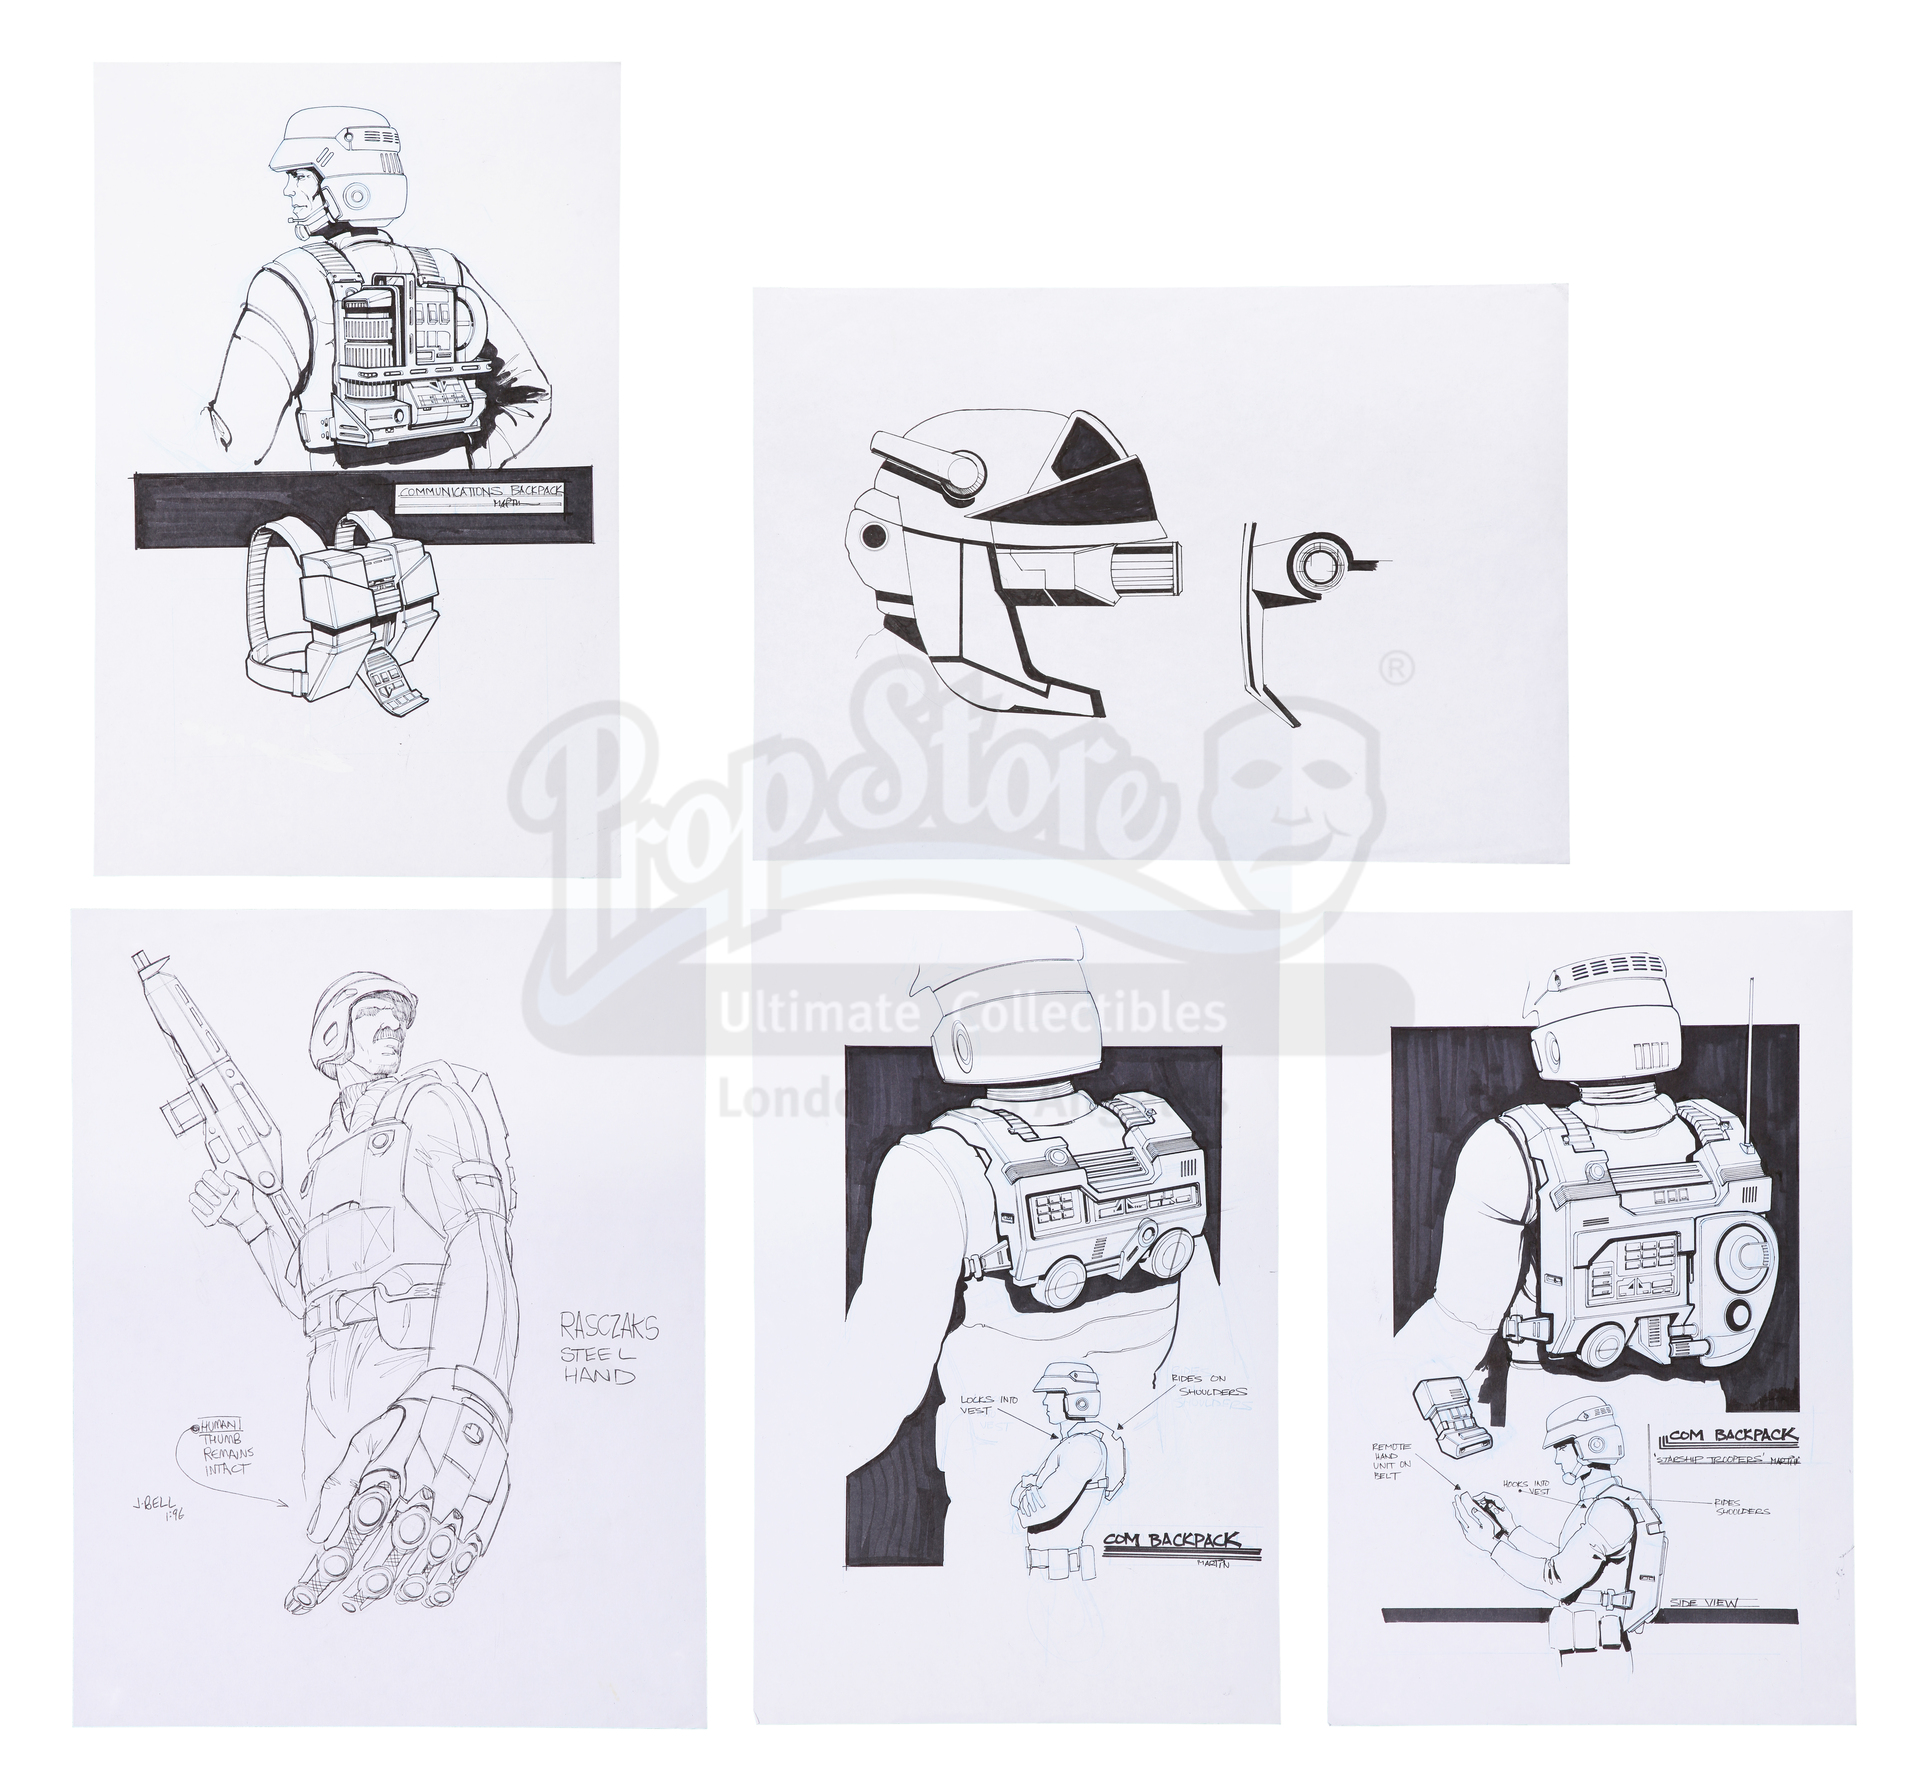 Lot # 1249: STARSHIP TROOPERS - Collection of Hand-Drawn Concept Artwork for Mobile Infantry Trooper